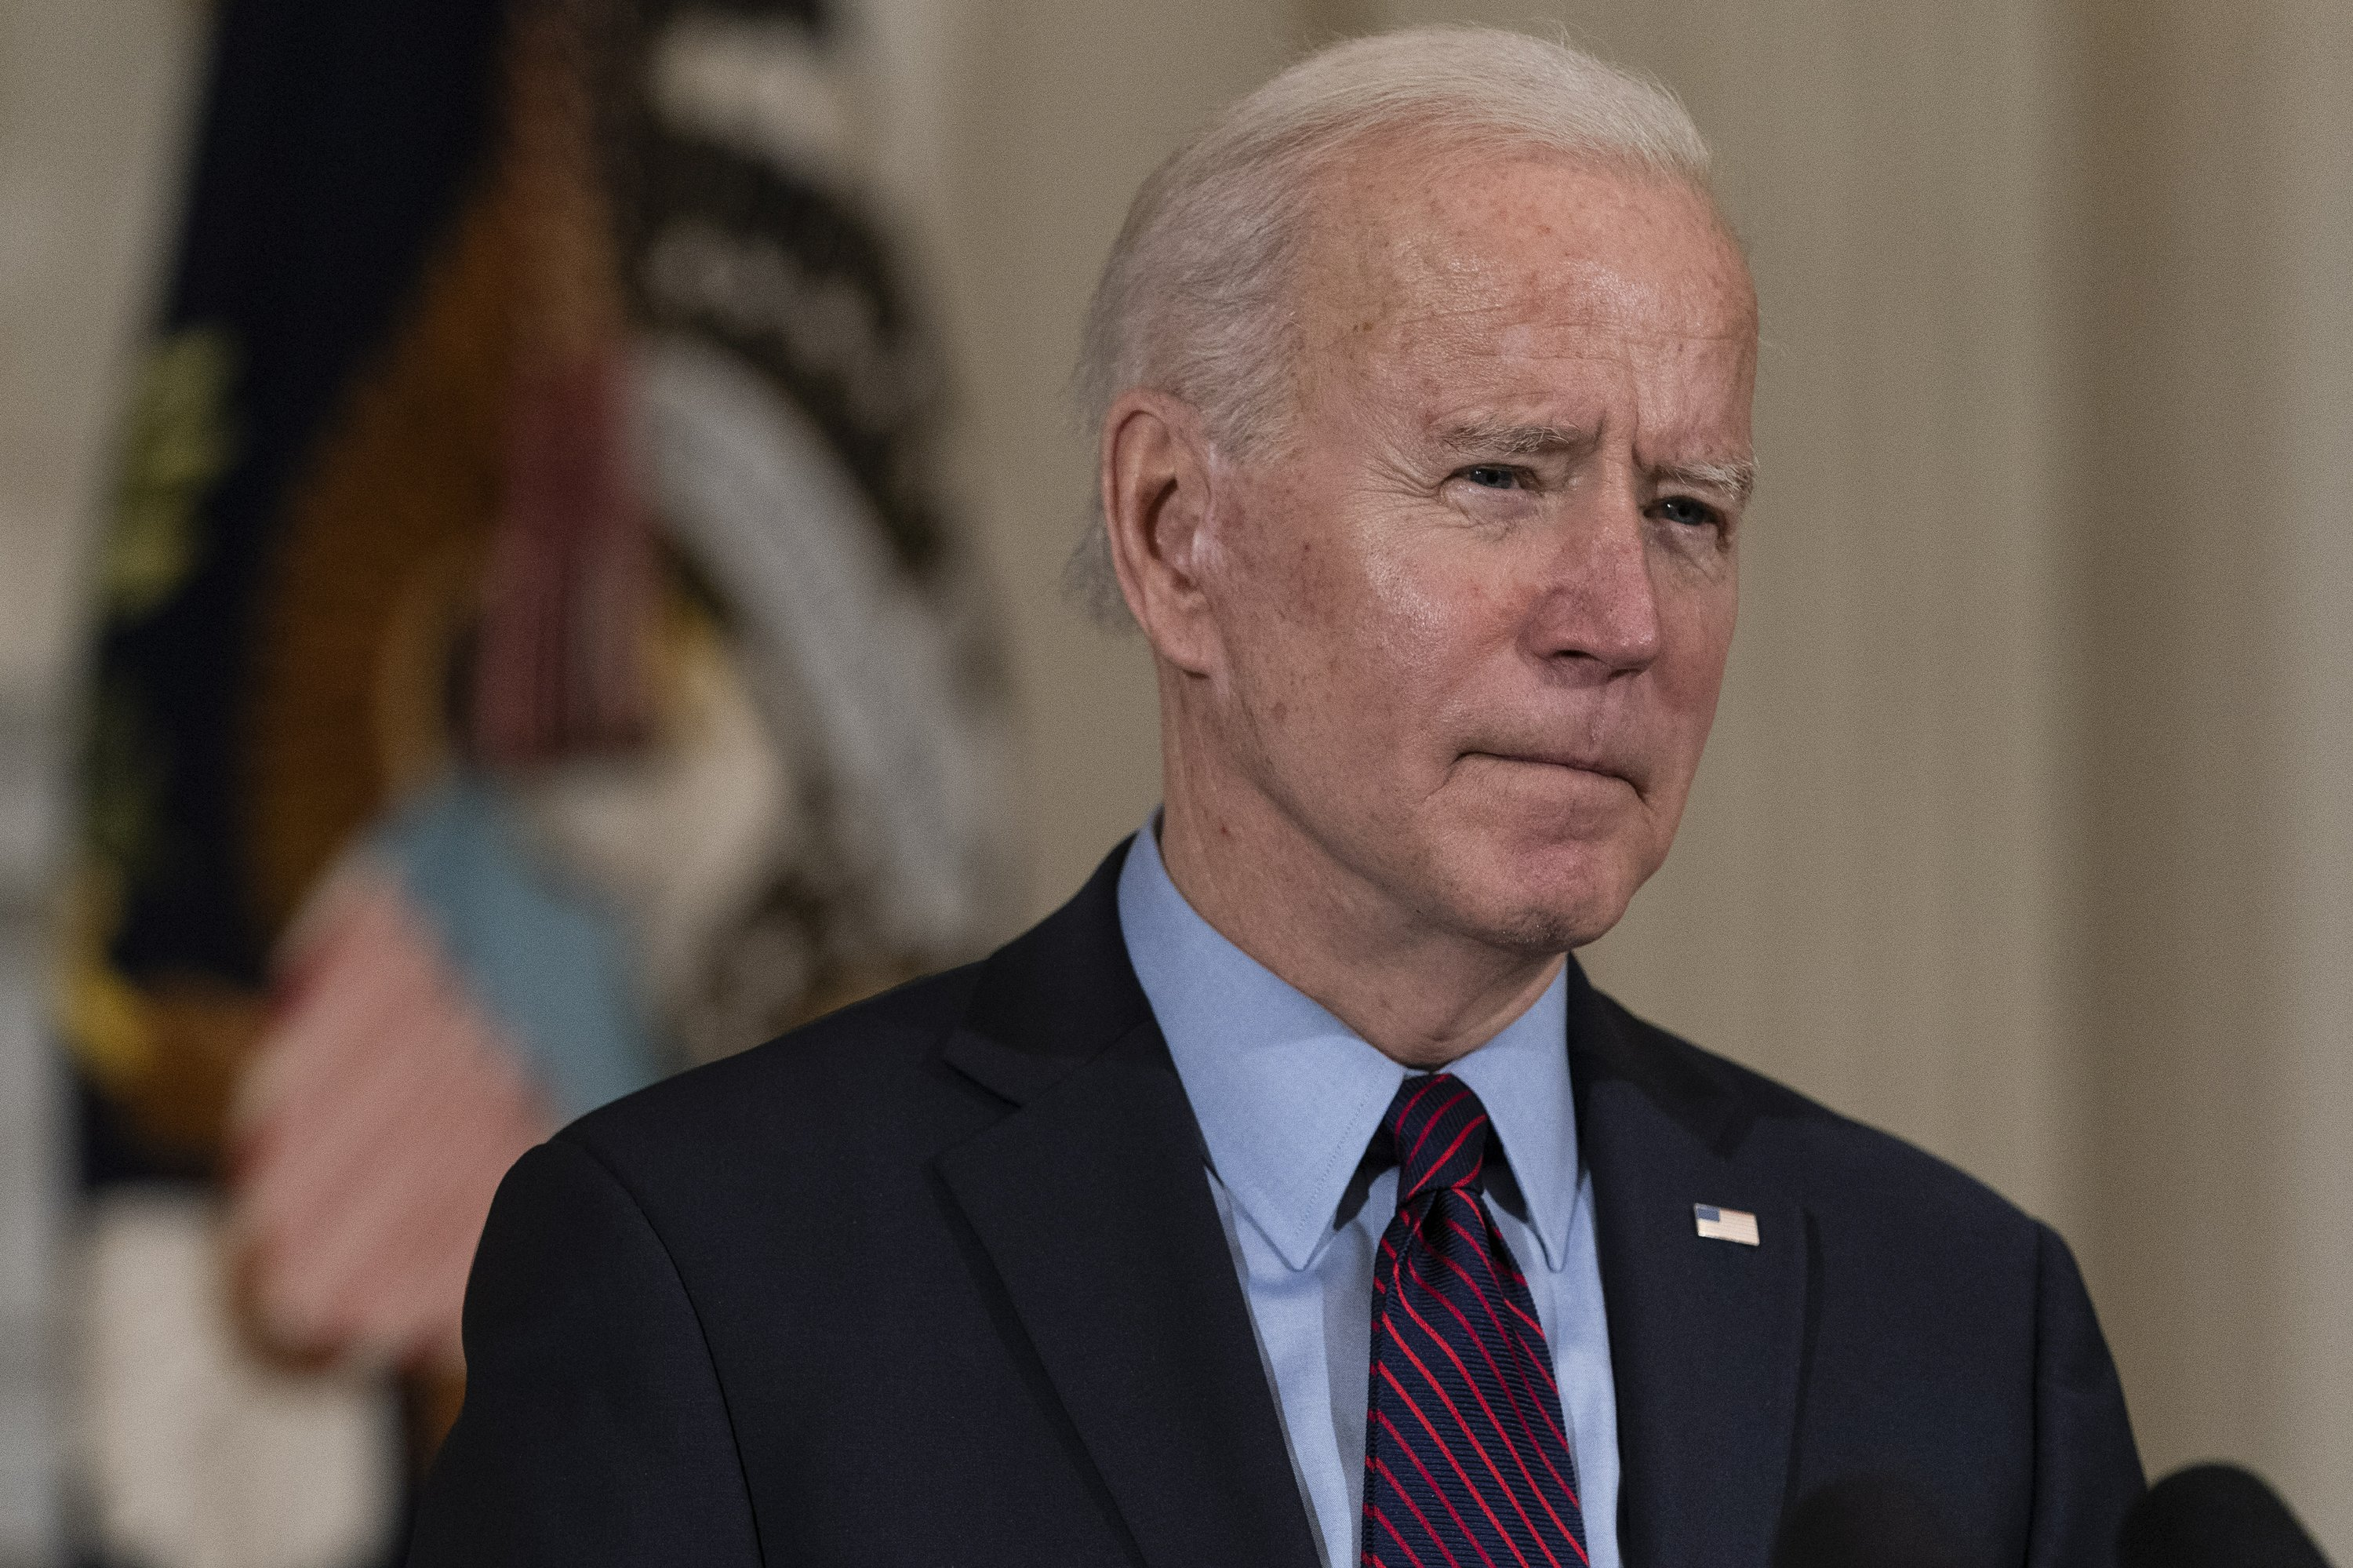 Biden gives Calif. woman pep talk in weekly address revival - The Associated Press